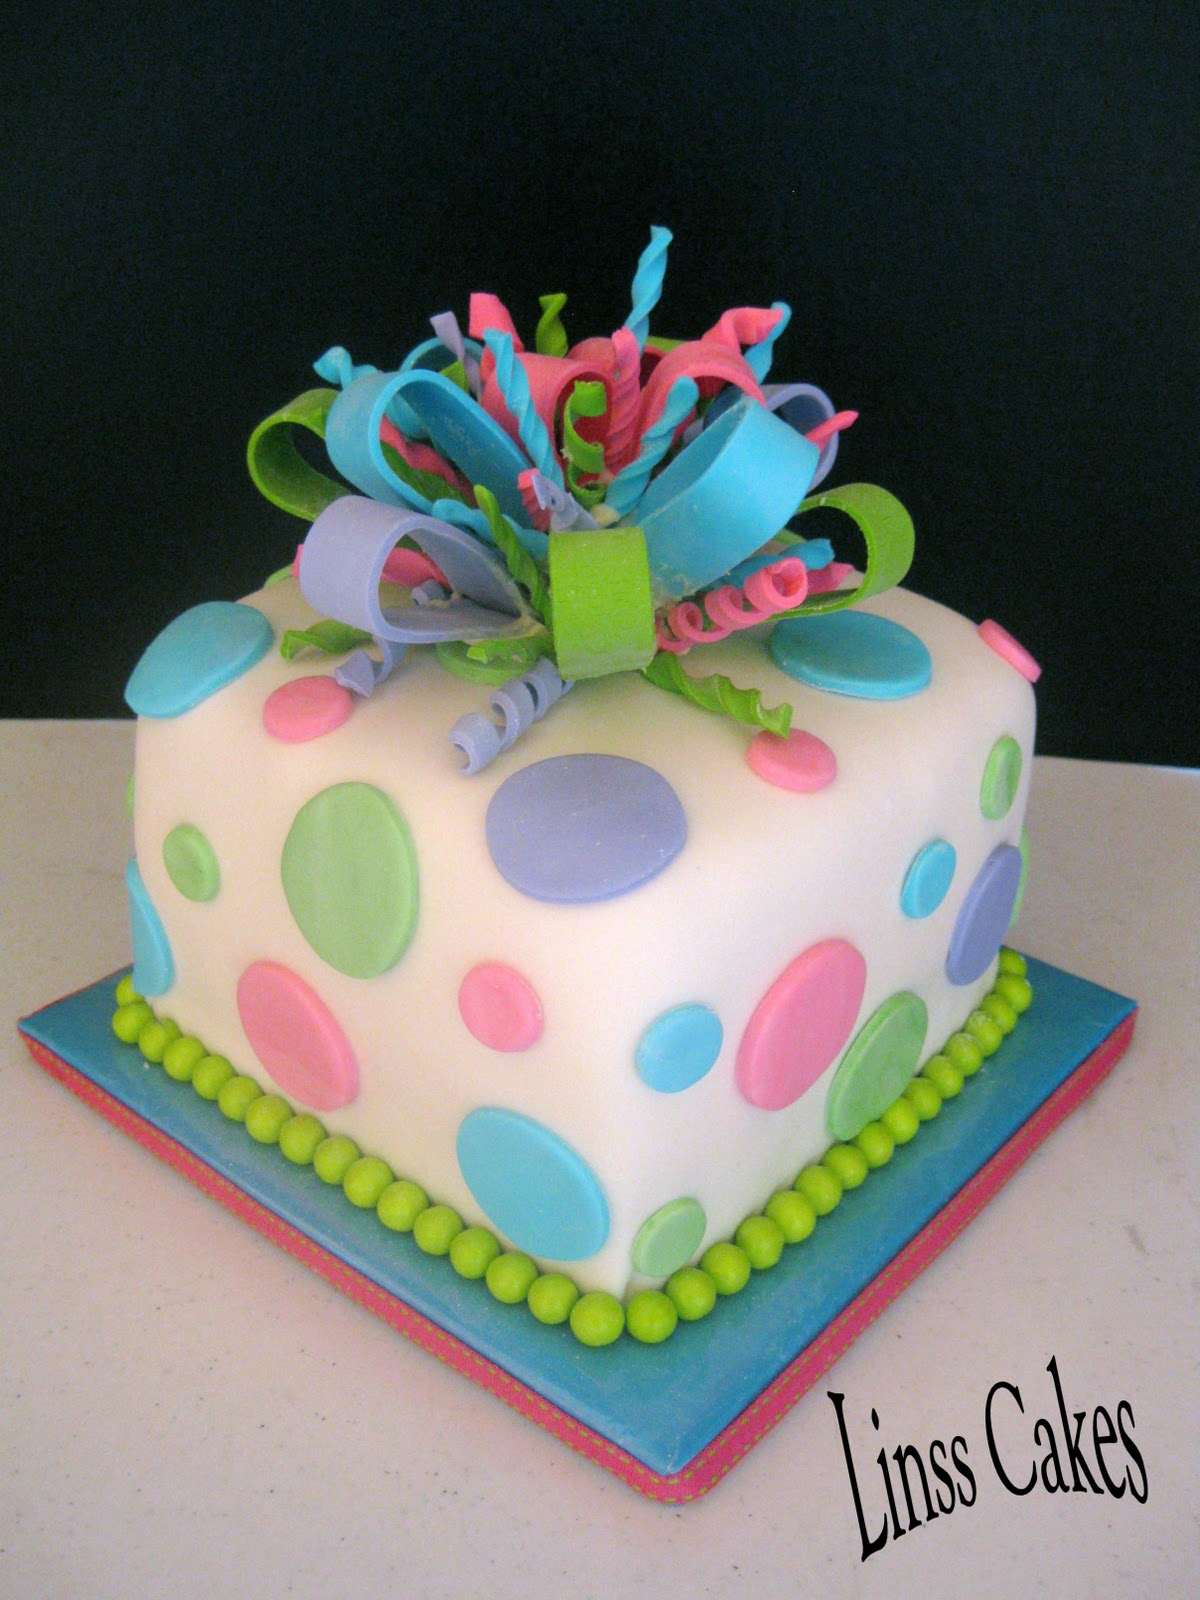 Cake Gift Images : Present/Gift Cakes The Hidden Cakery